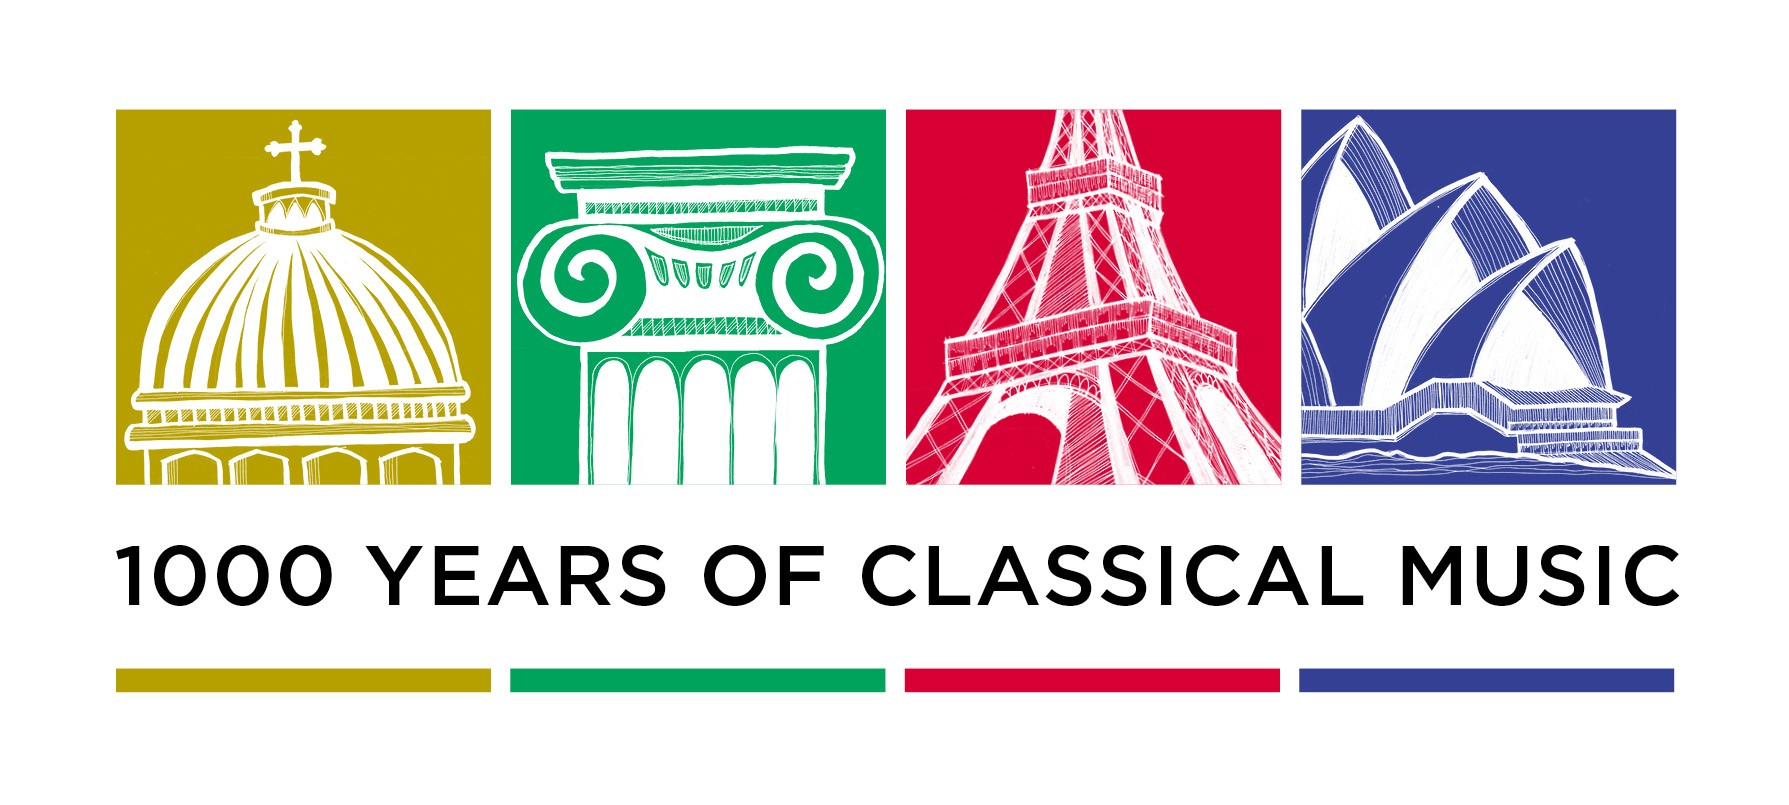 1000 Years of Classical Music - 1000 Years of Classical